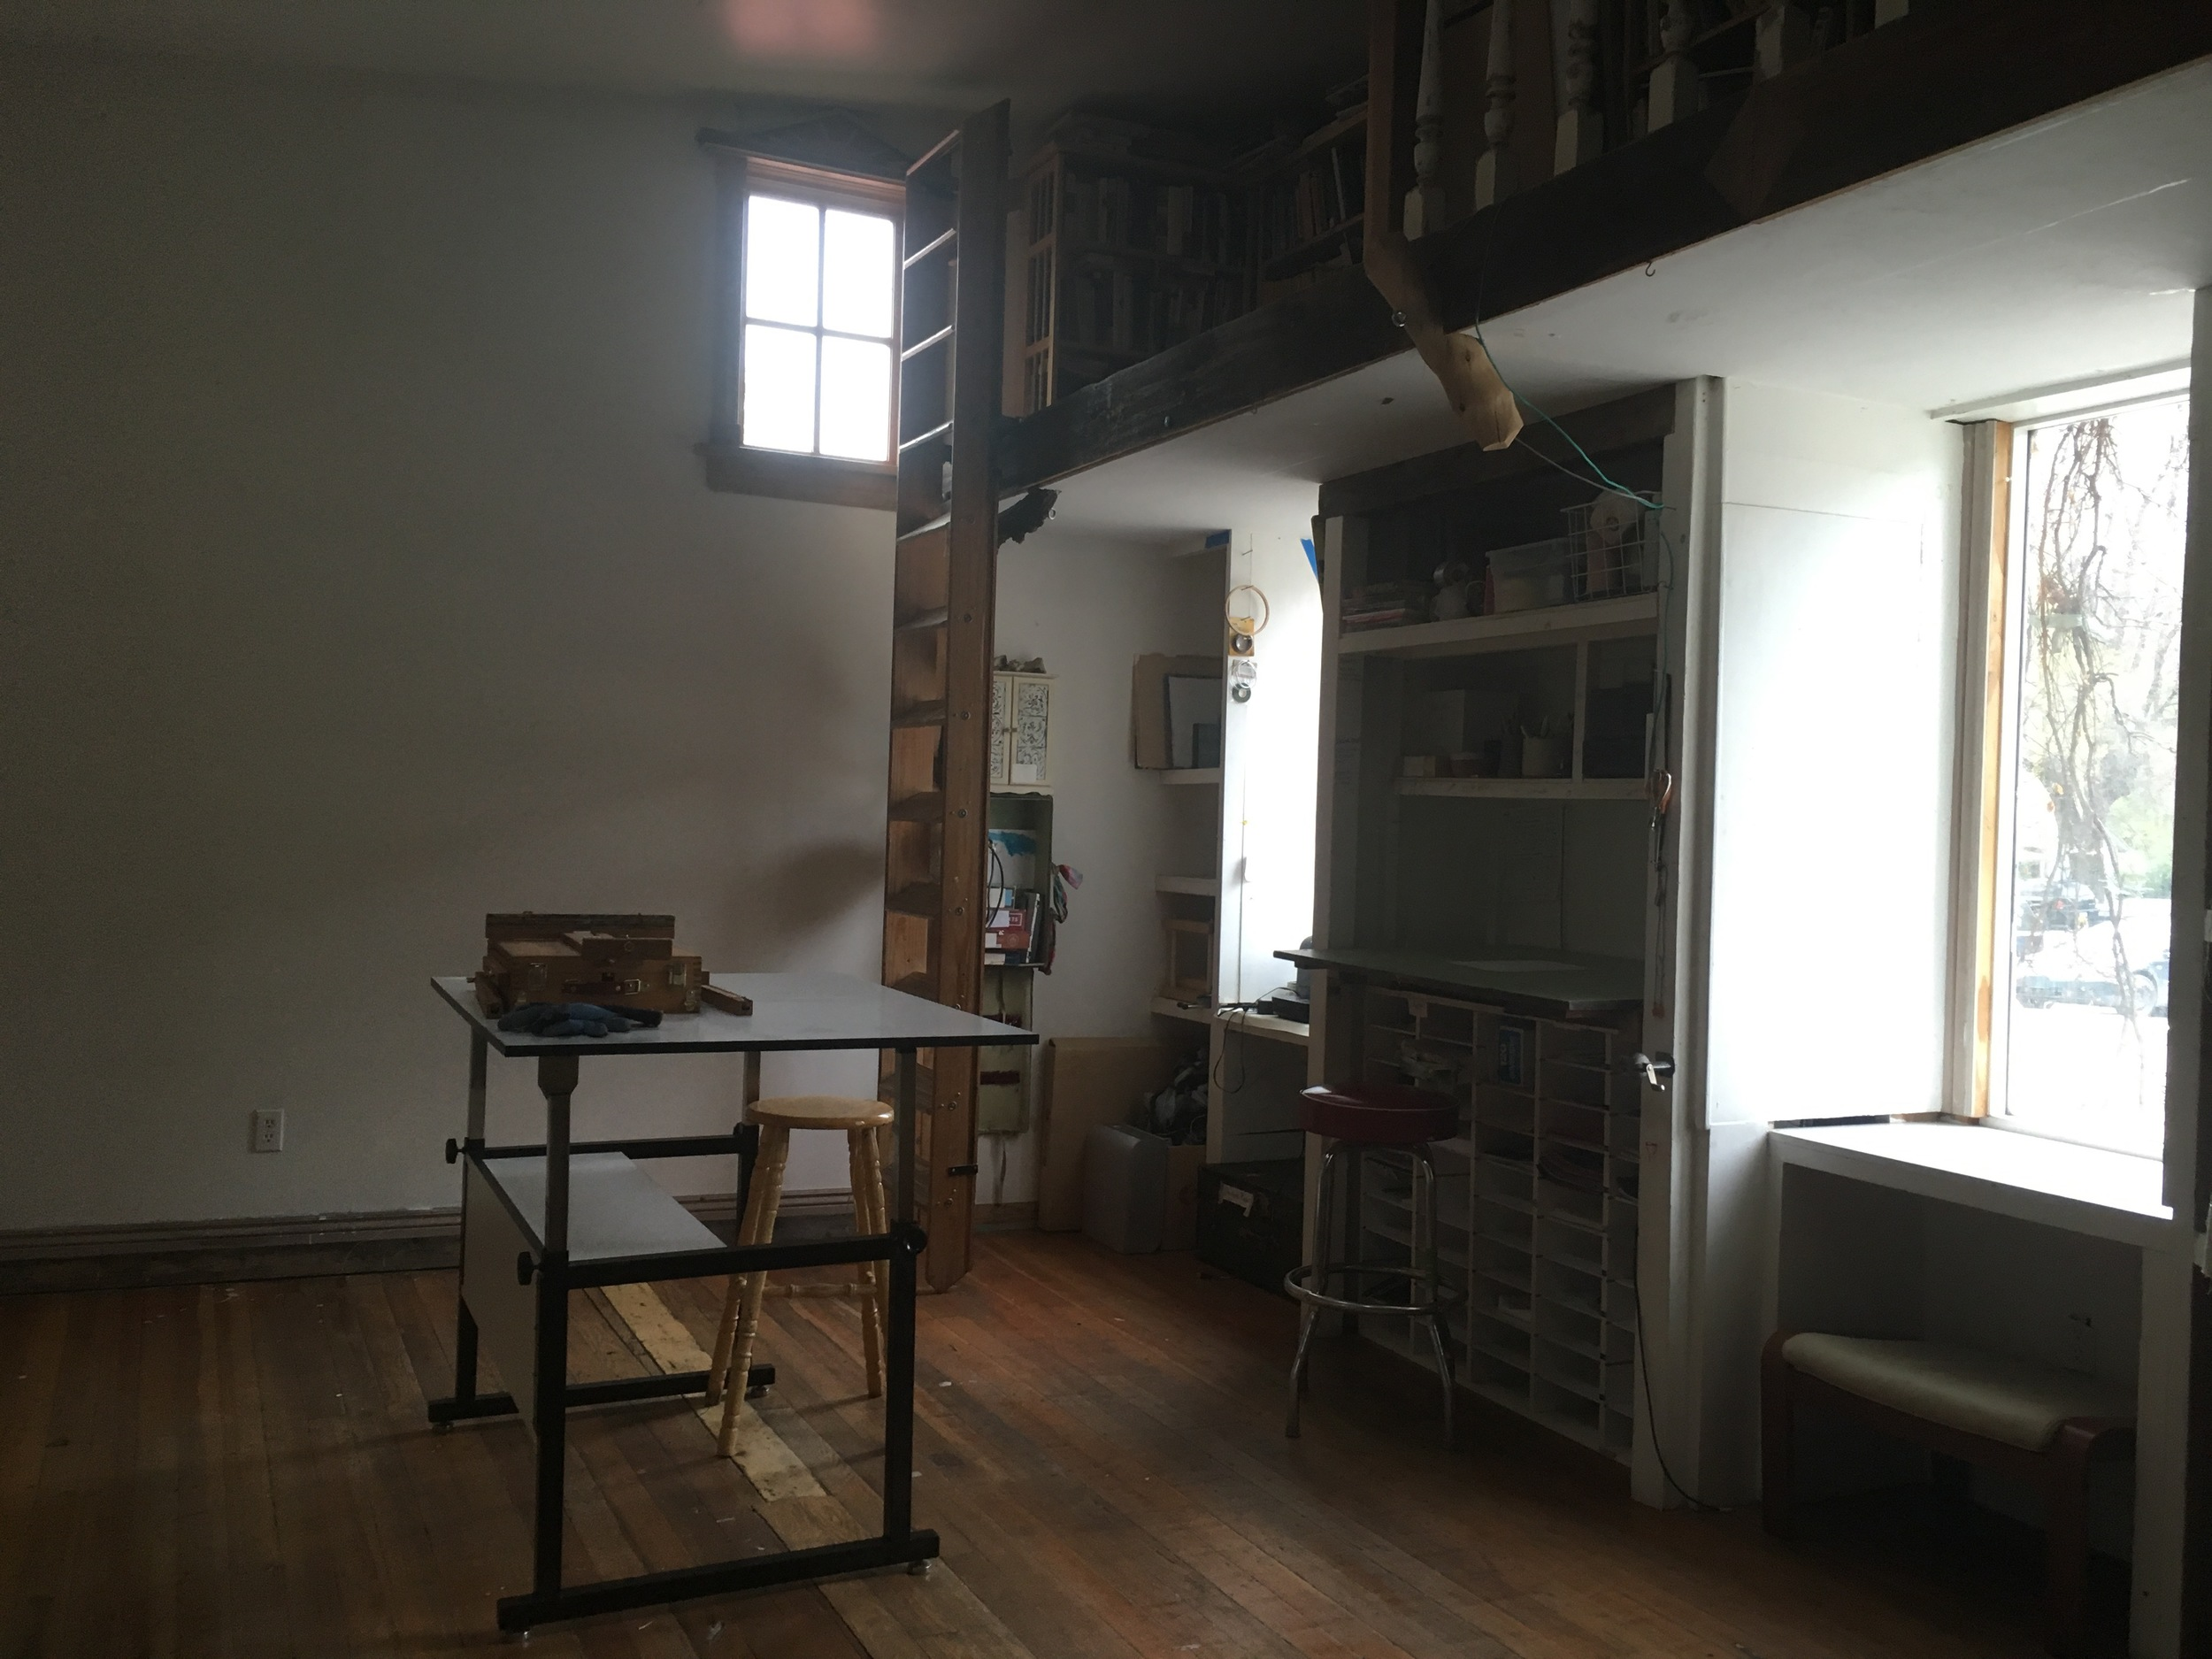 The art studio, for visual artists. There are a bunch of windows and wall canvas spaces, plus a sliding ladder library!